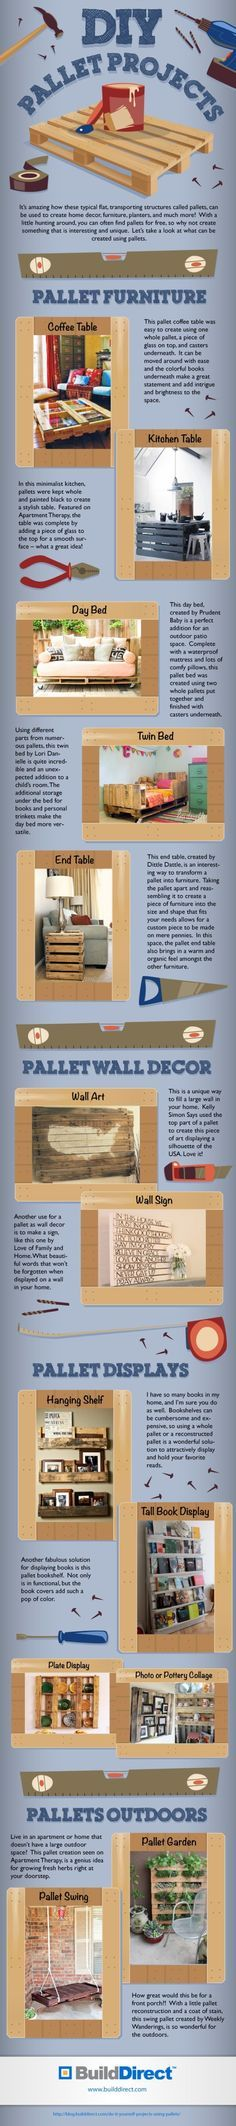 DIY Pallets4 DIY Pallet Projects by jfmcb